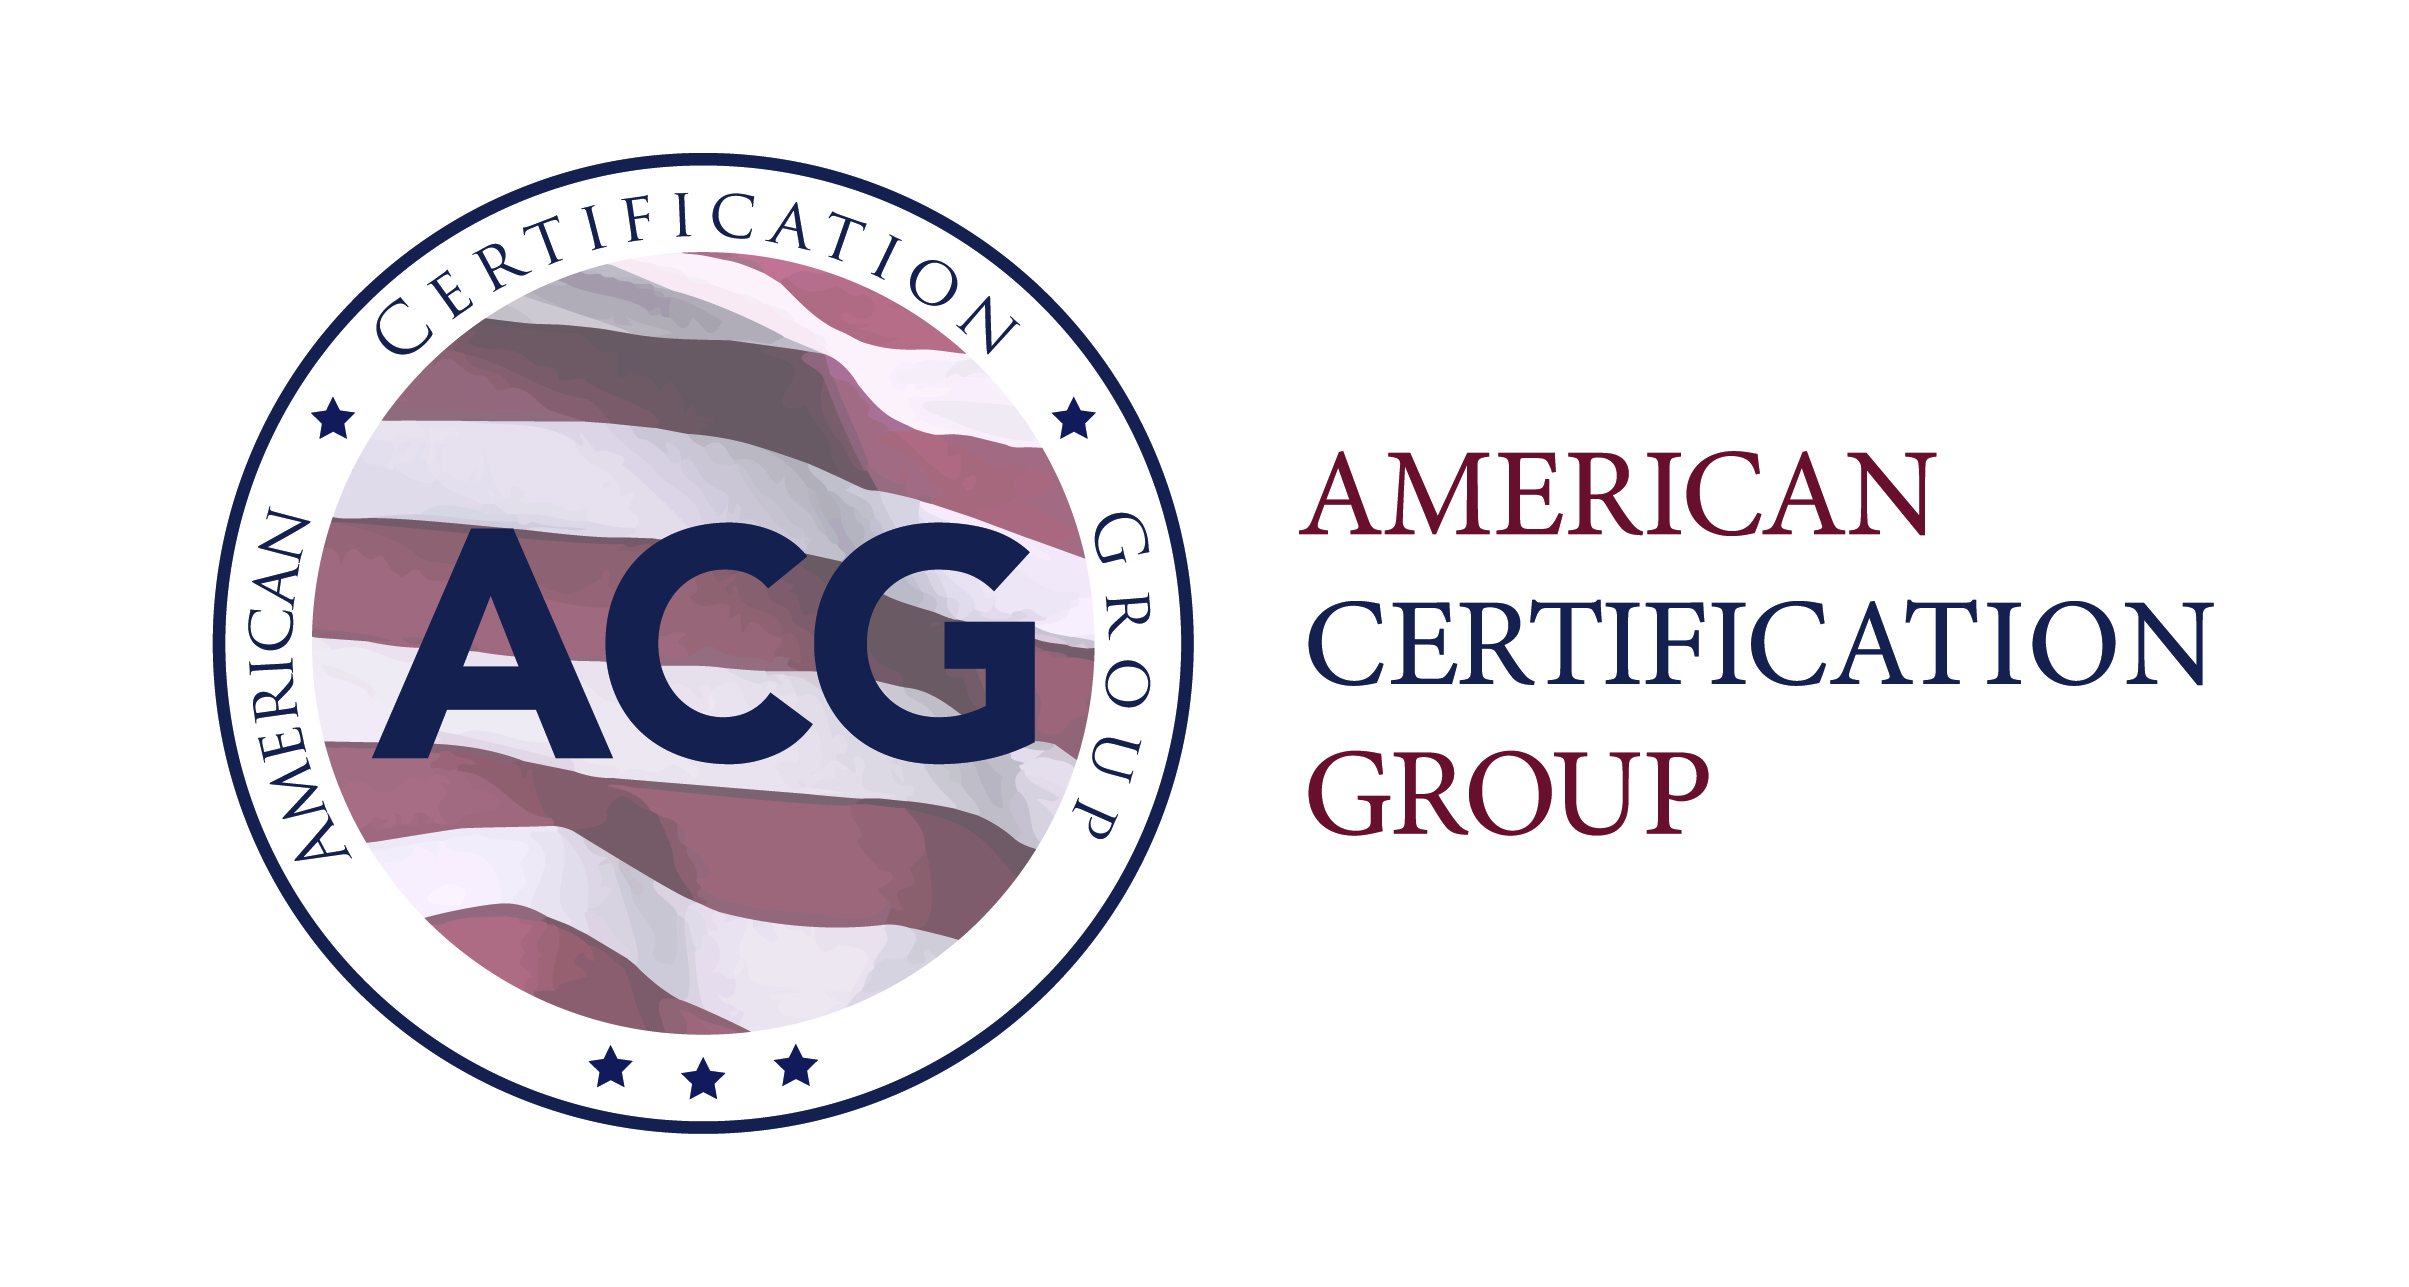 American Certification Group